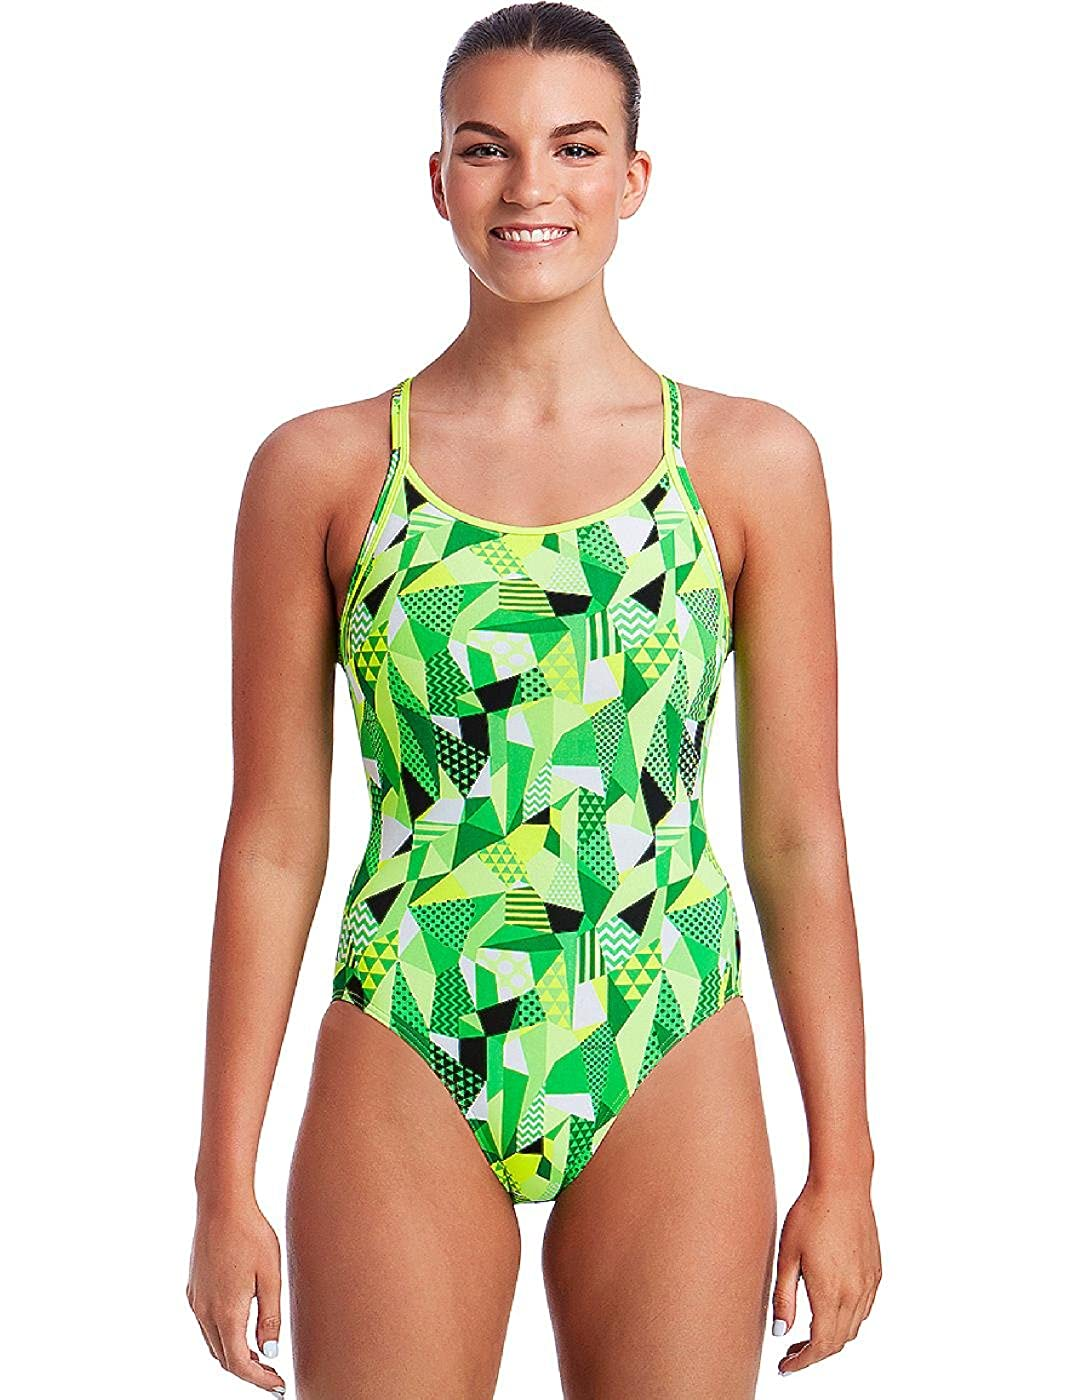 6caffa89ddd85 Funkita Womens Diamond Back One Piece Swimsuit - Green - 8 at Amazon  Women s Clothing store